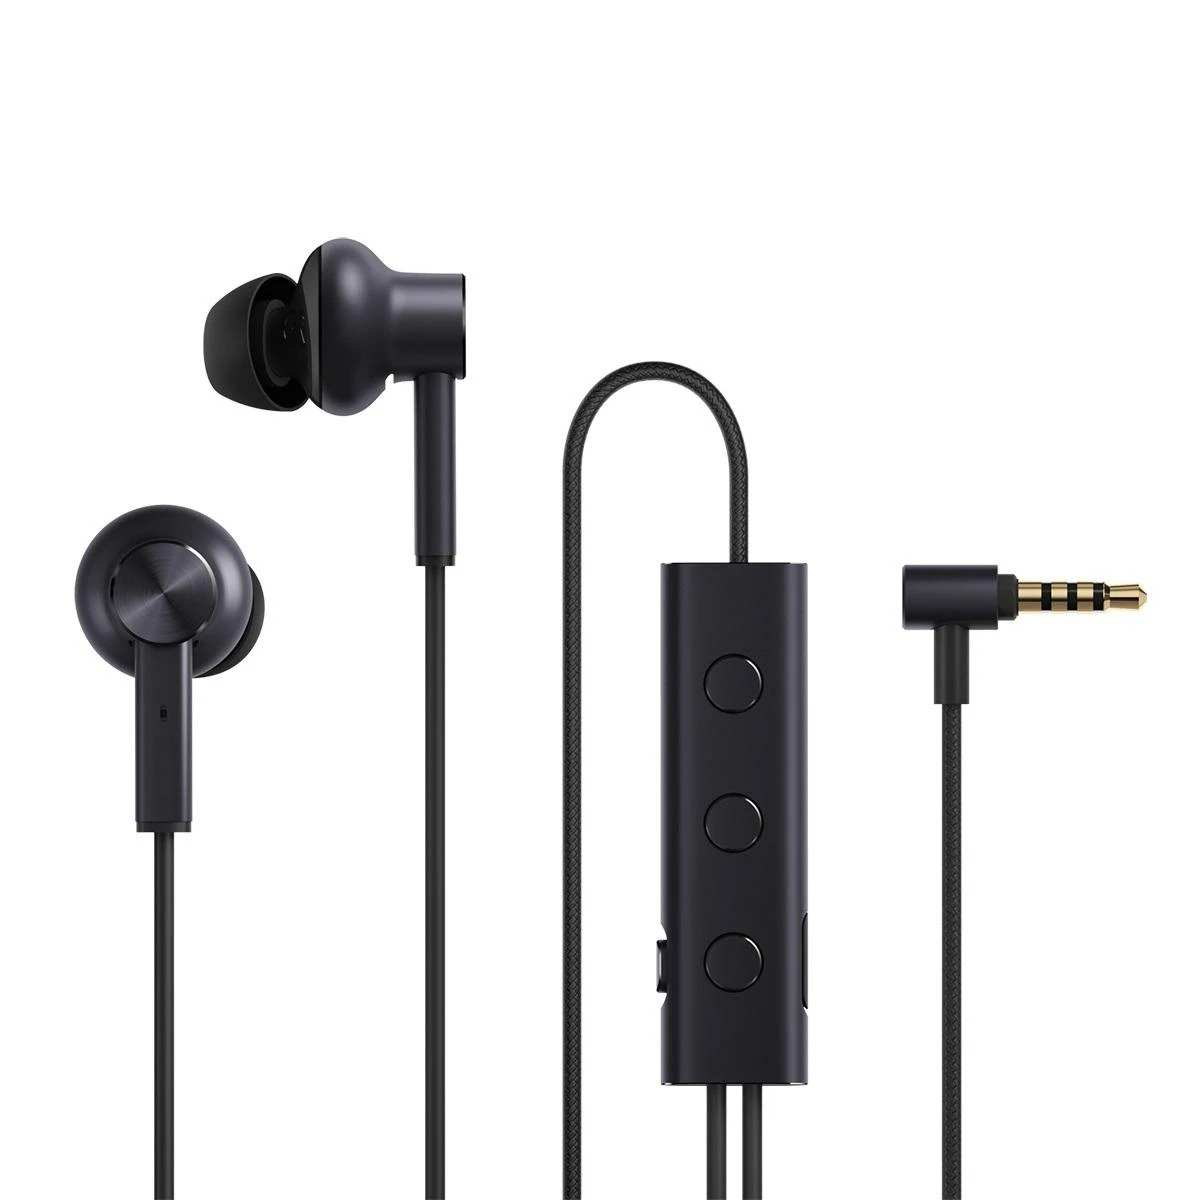 Xiaomi Active Noise Cancelling 3.5mm Wired Earphone  Banggood Coupon Promo Code